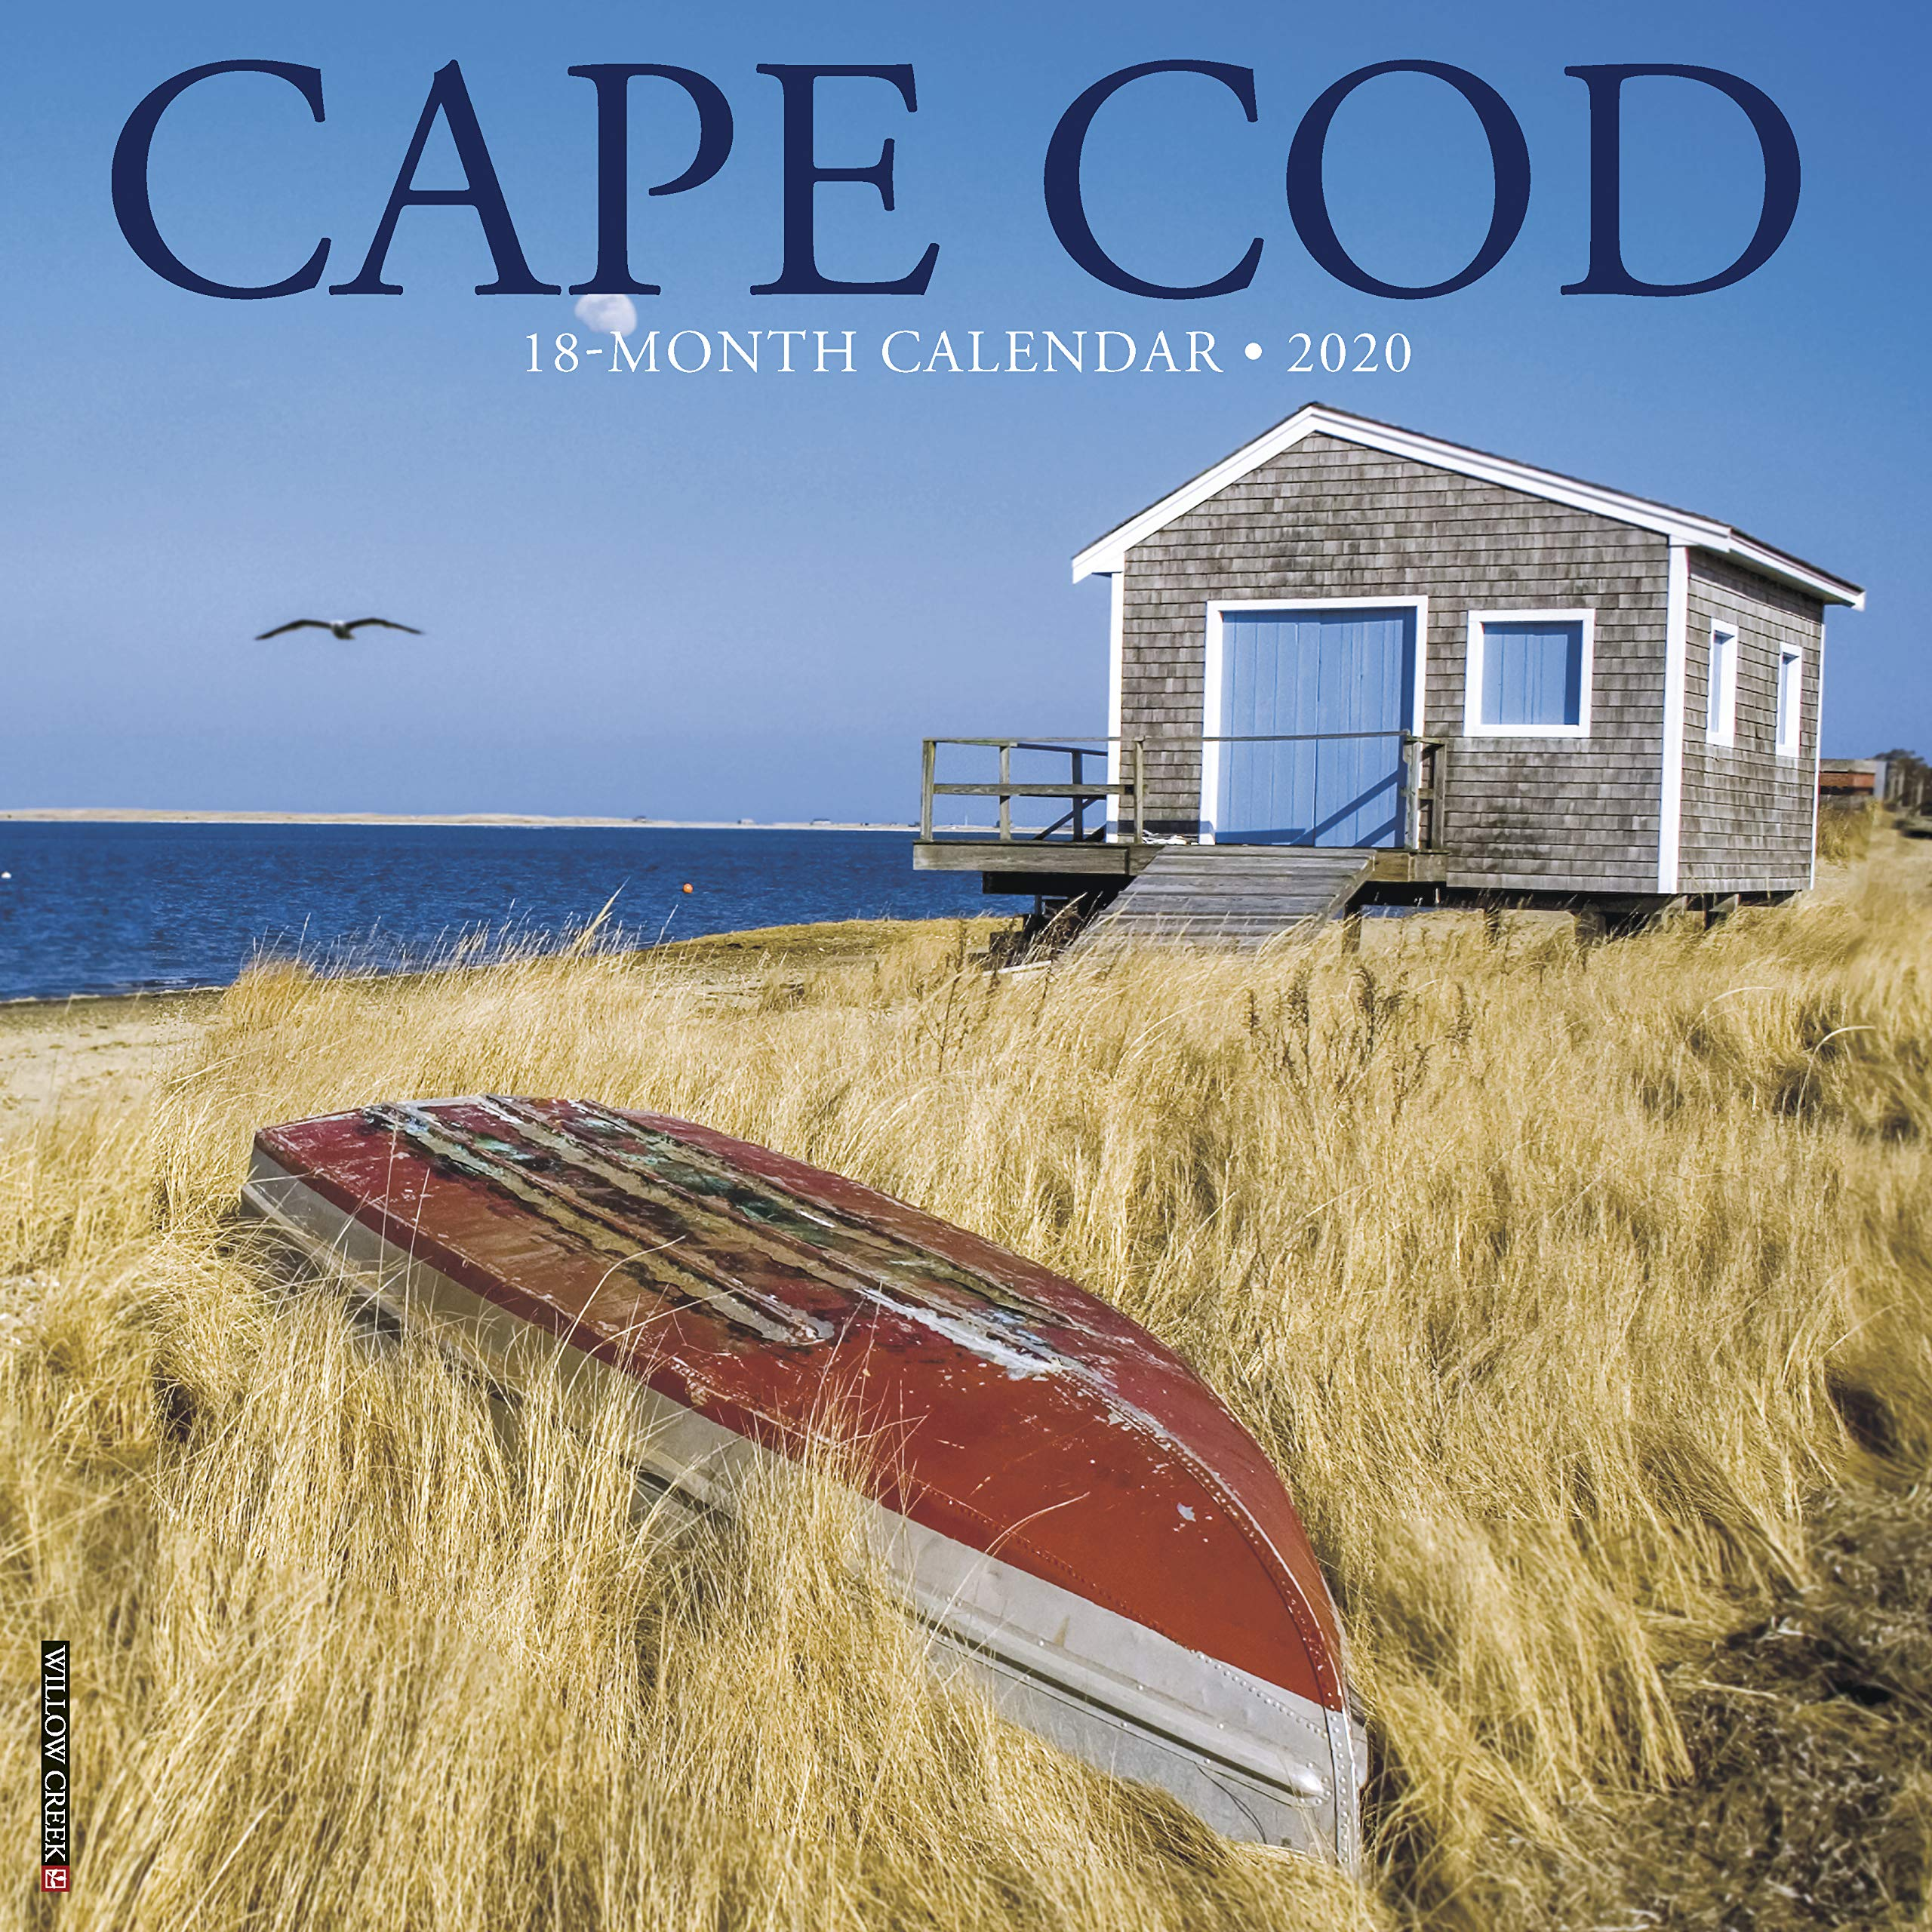 Cape Cod Calendar 2020 Cape Cod 2020 Wall Calendar: Willow Creek Press: 9781549205712